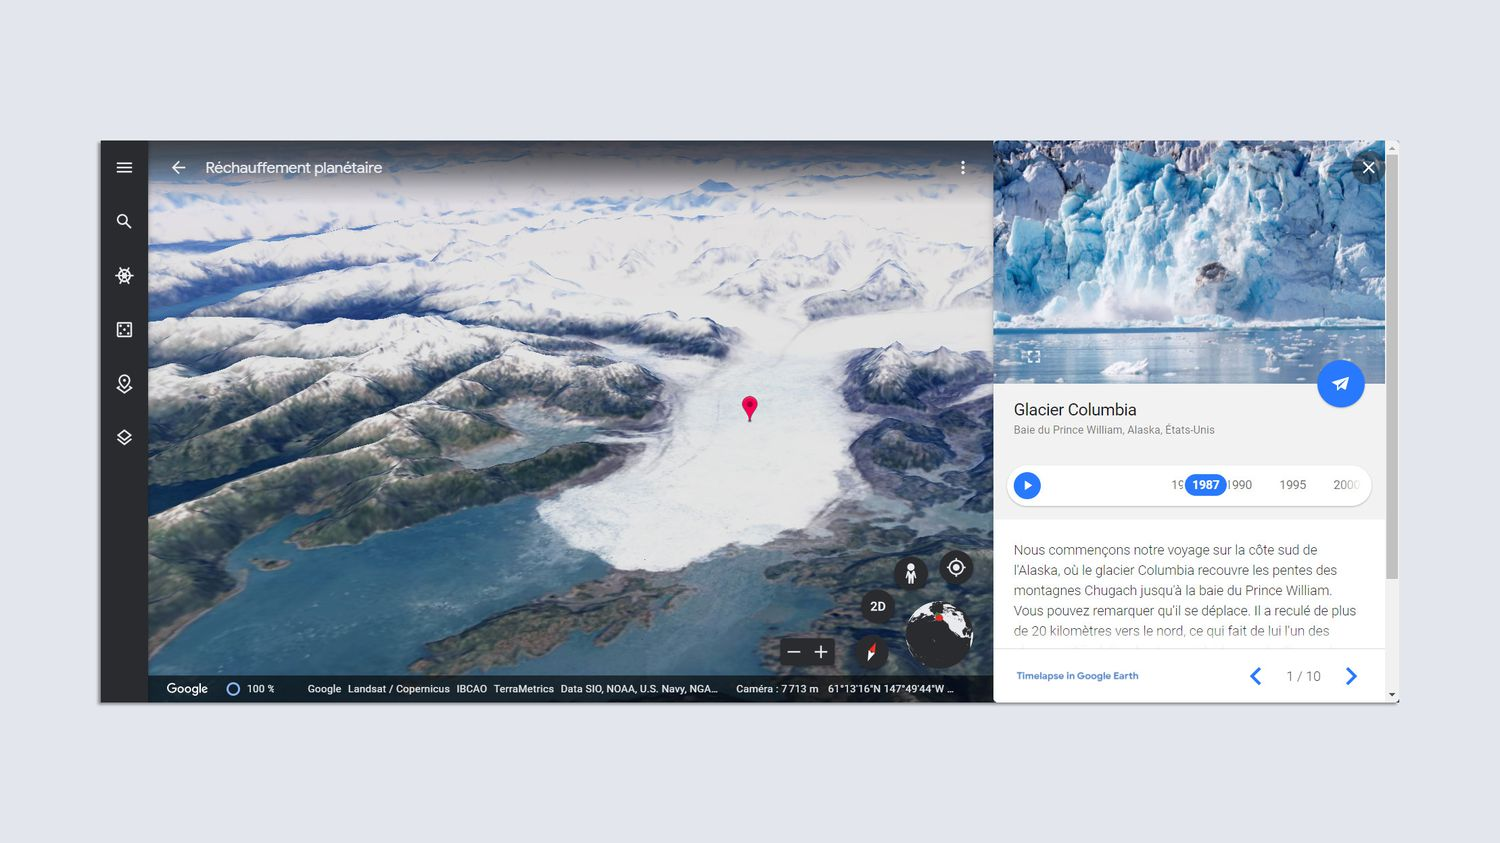 """The Timelapse function in Google Earth makes it possible to visualize global warming in 3D: """"The summary gets tangible"""""""